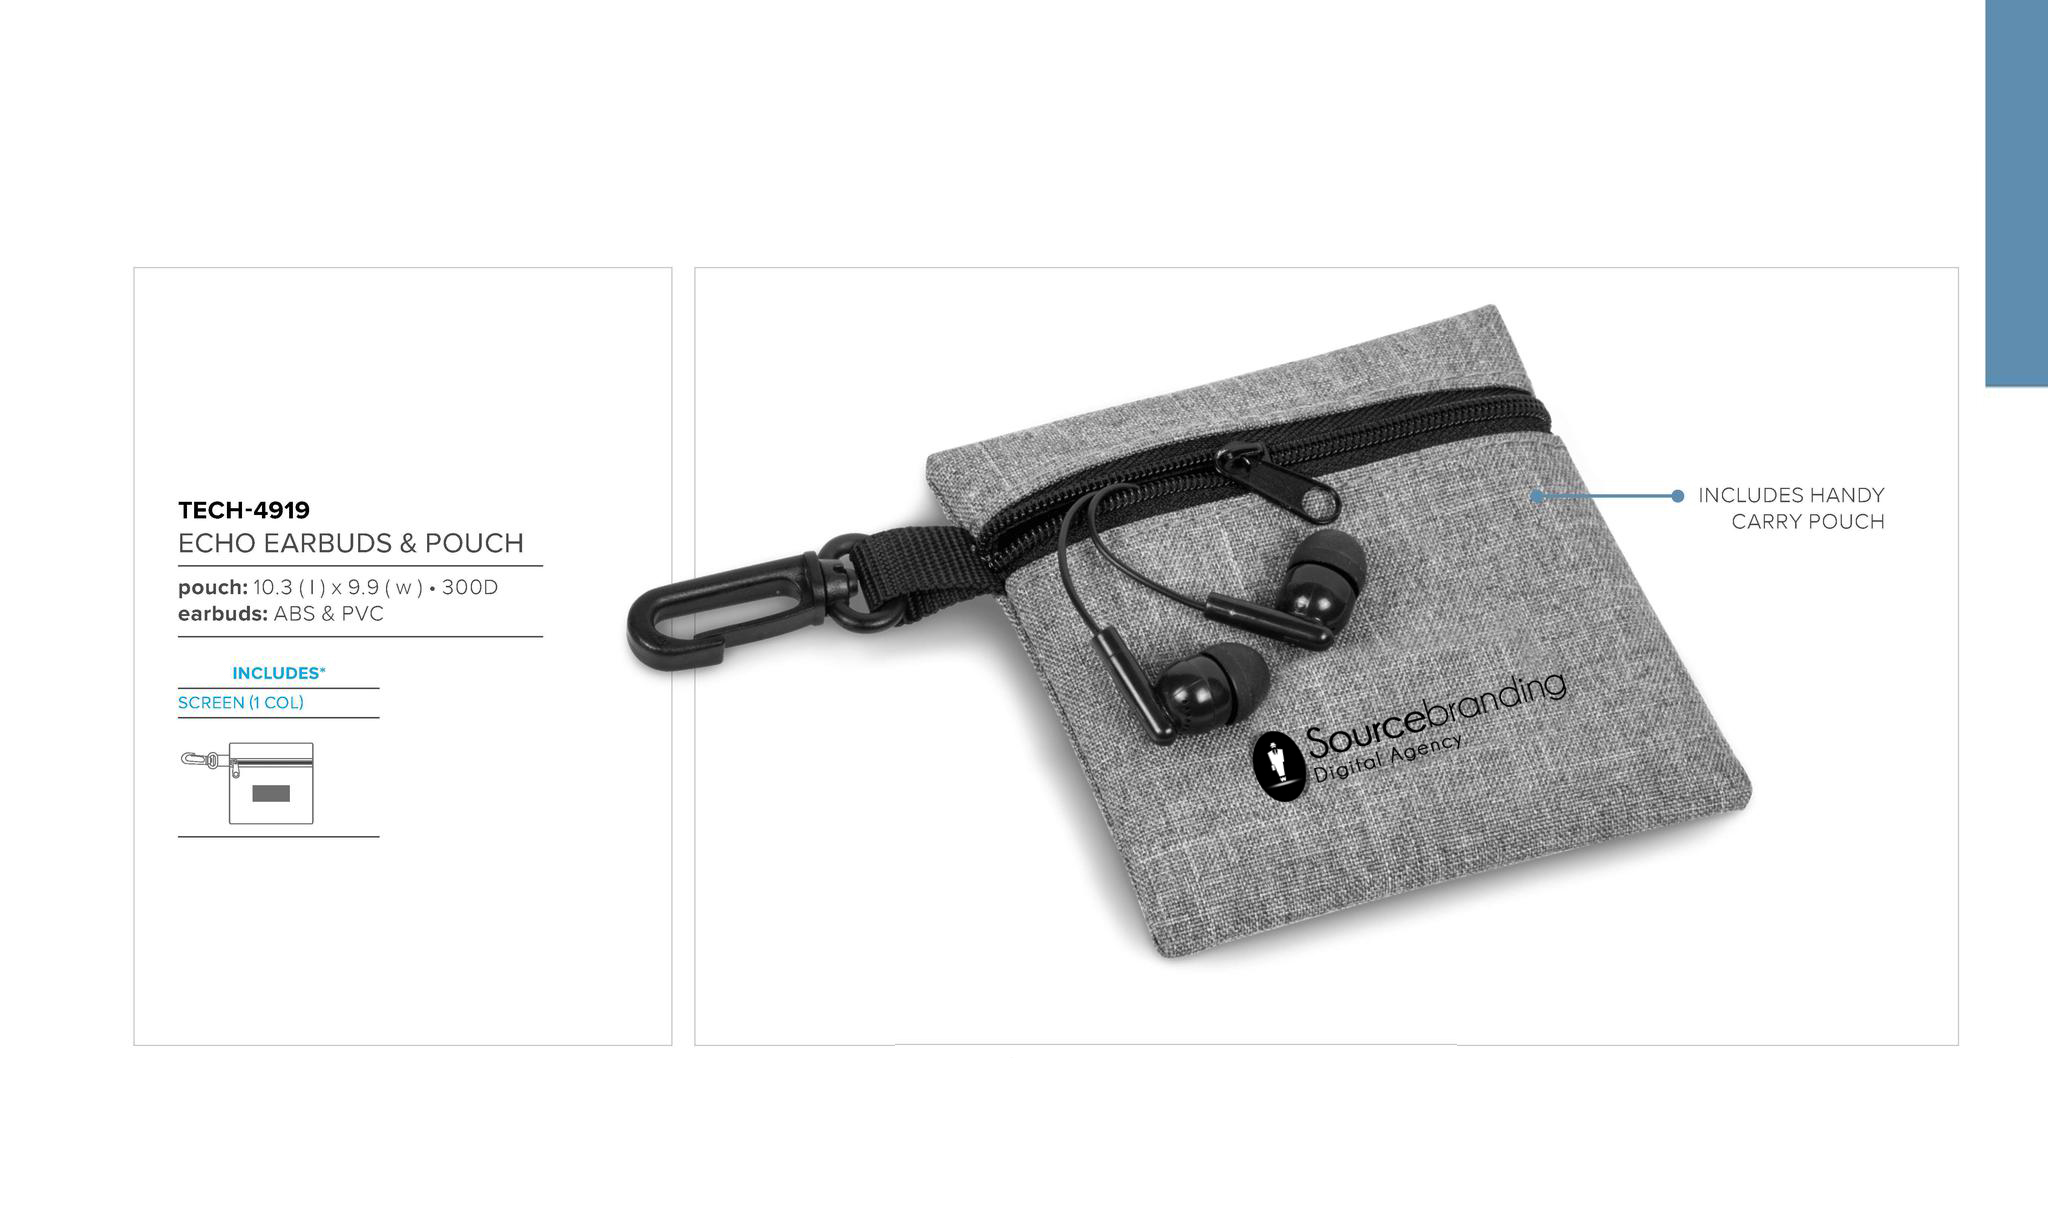 Sourcebranding earbuds and pouch